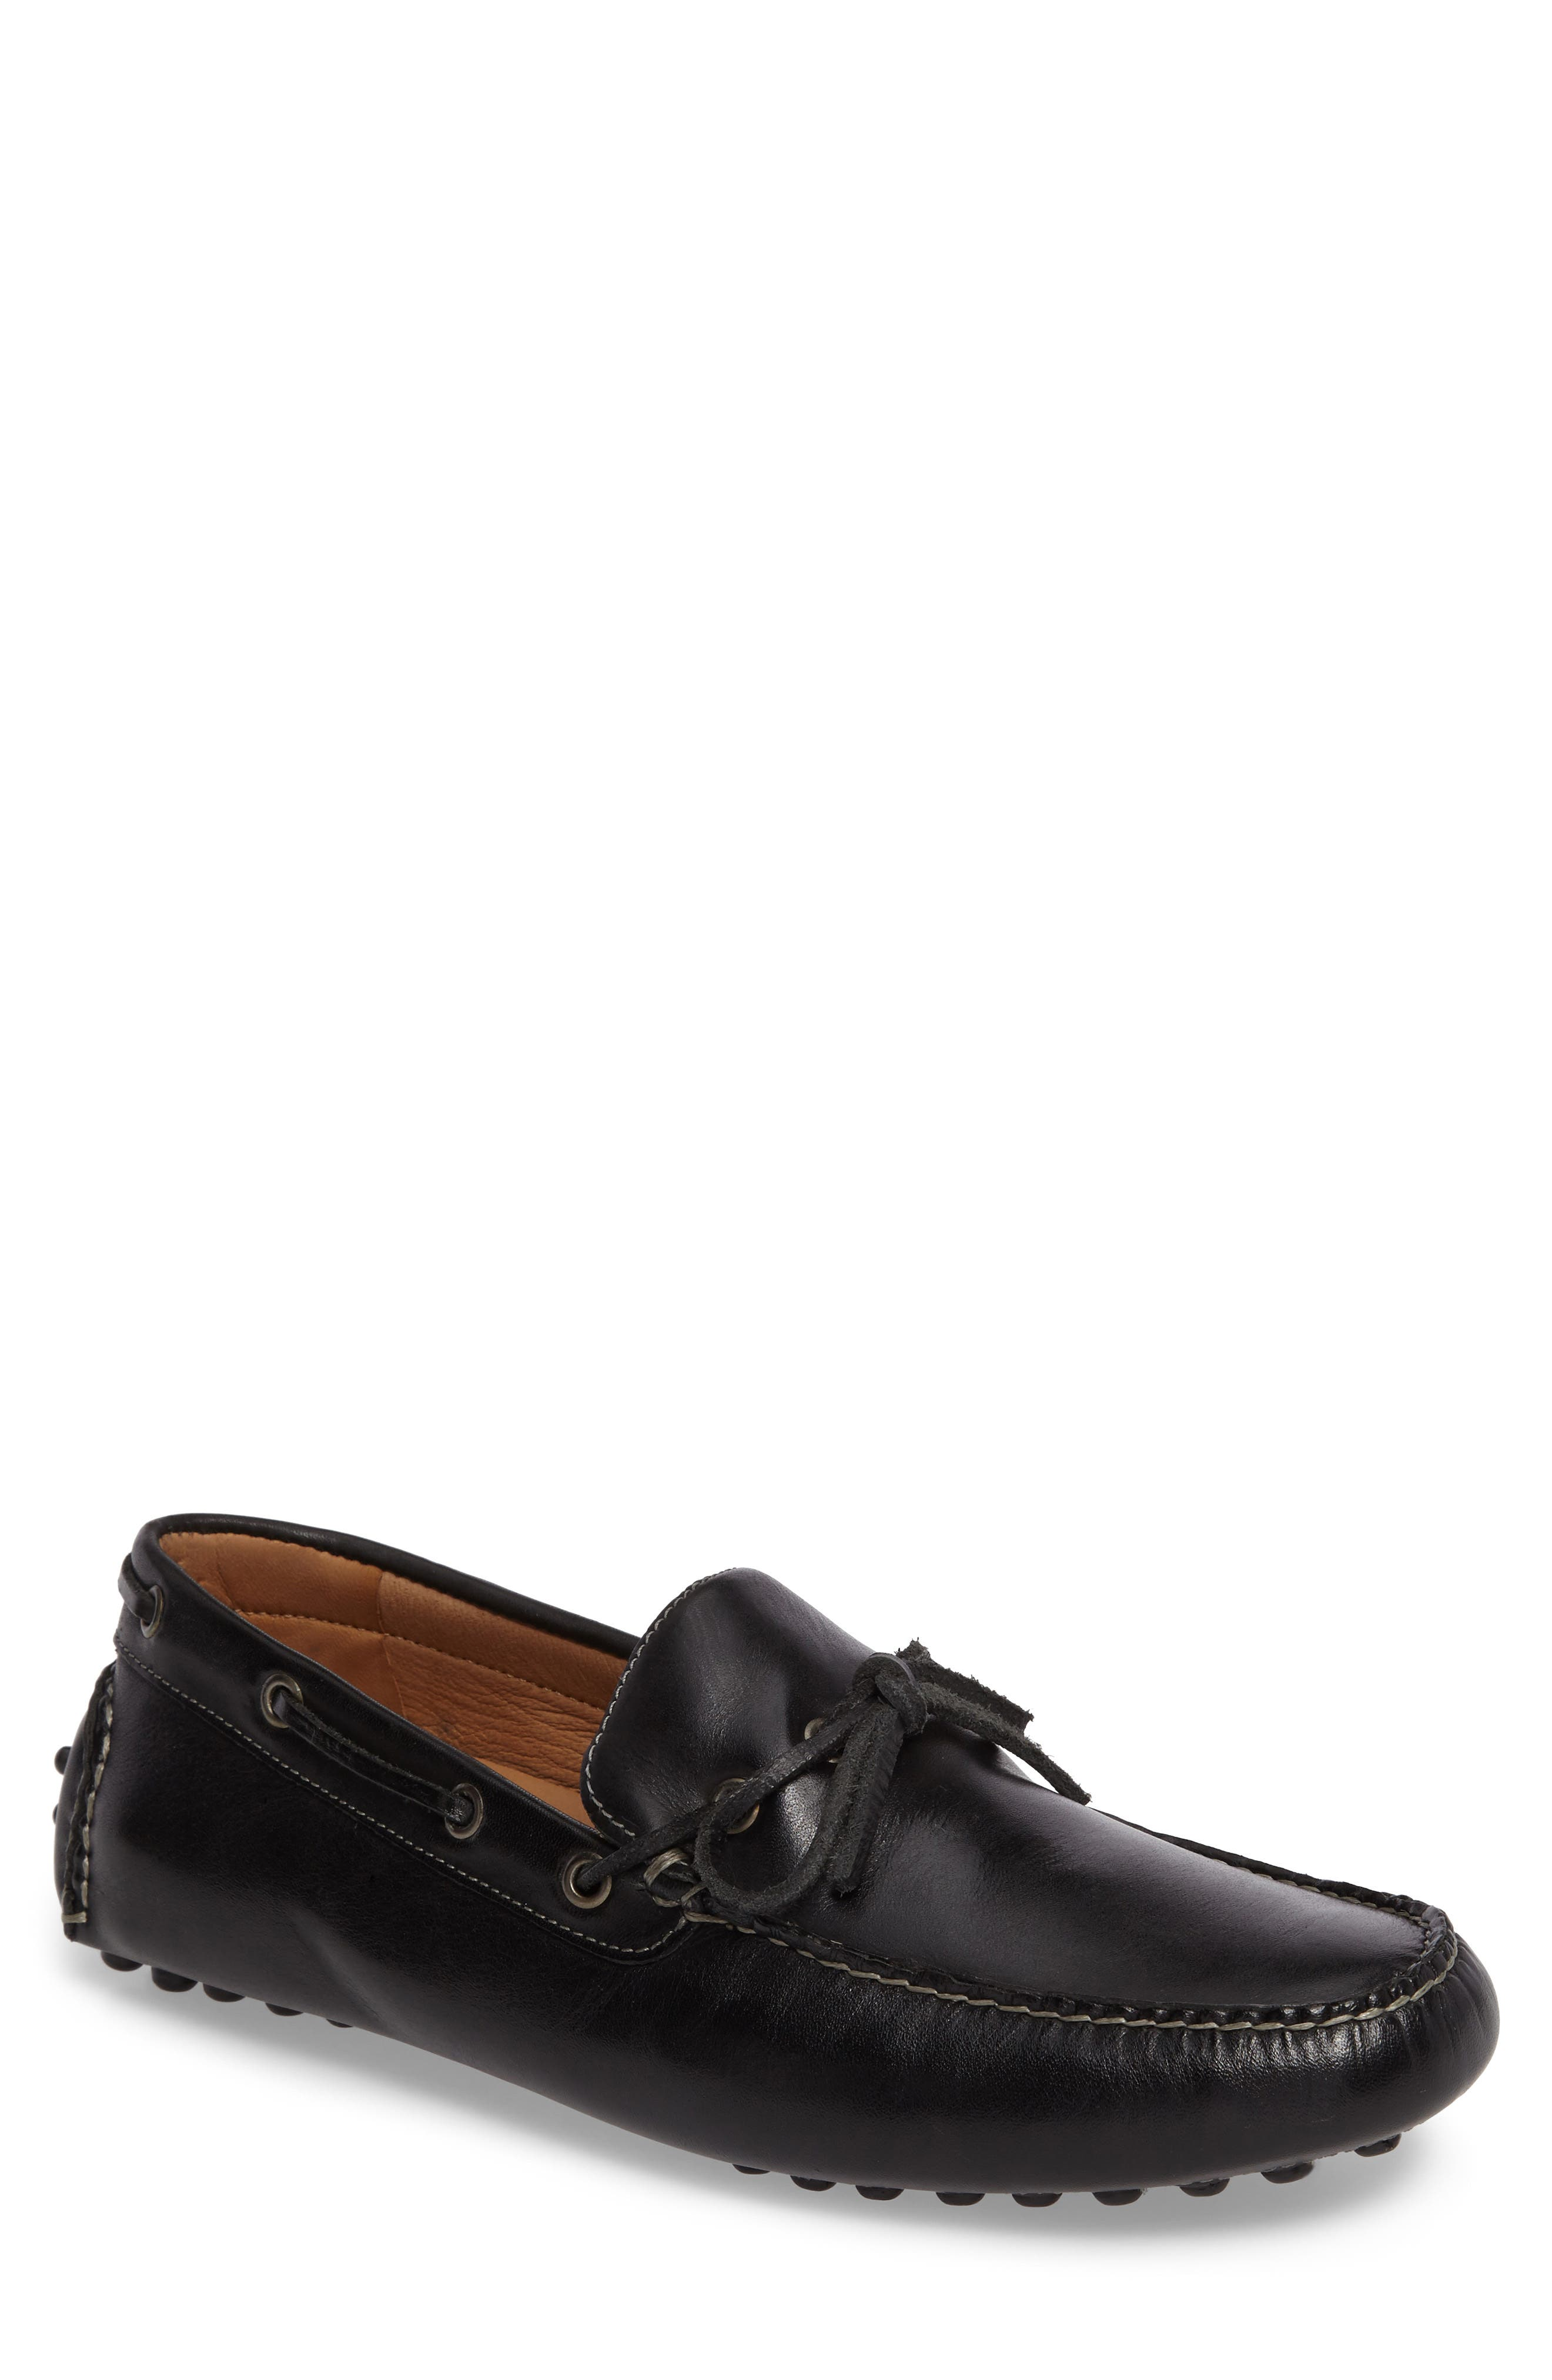 Main Image - John W. Nordstrom® Midland Driving Shoe (Men)